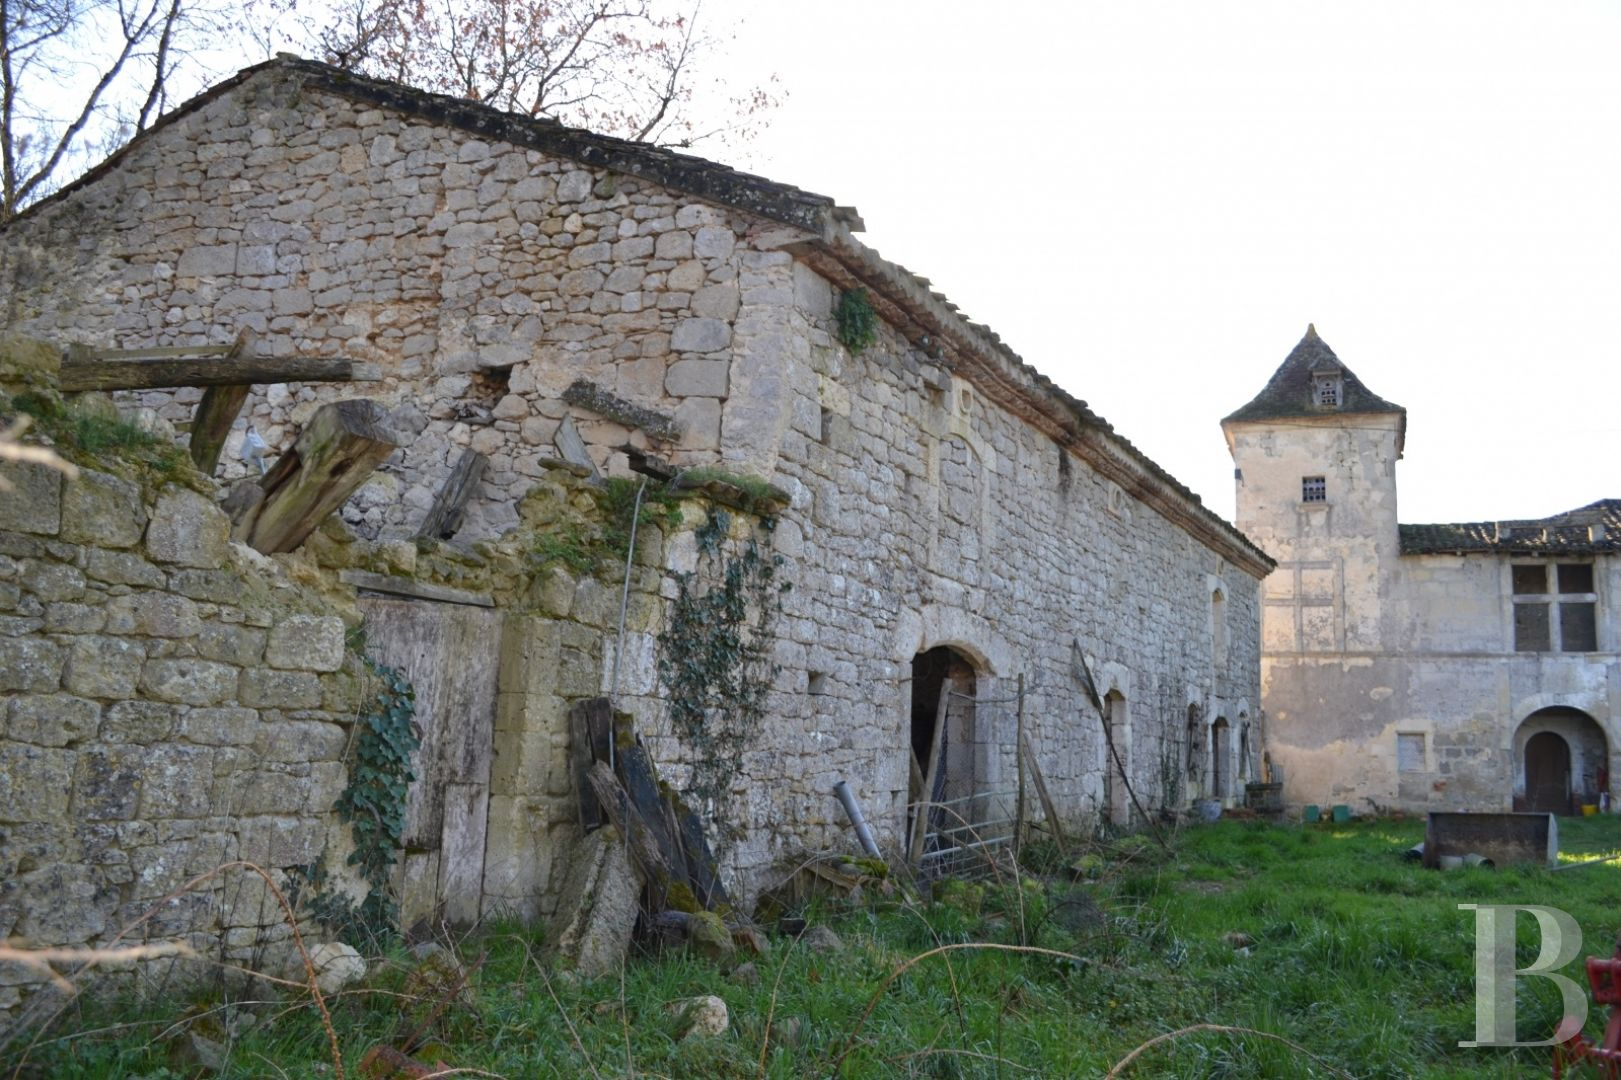 property for sale France aquitaine stronghold house - 3 zoom